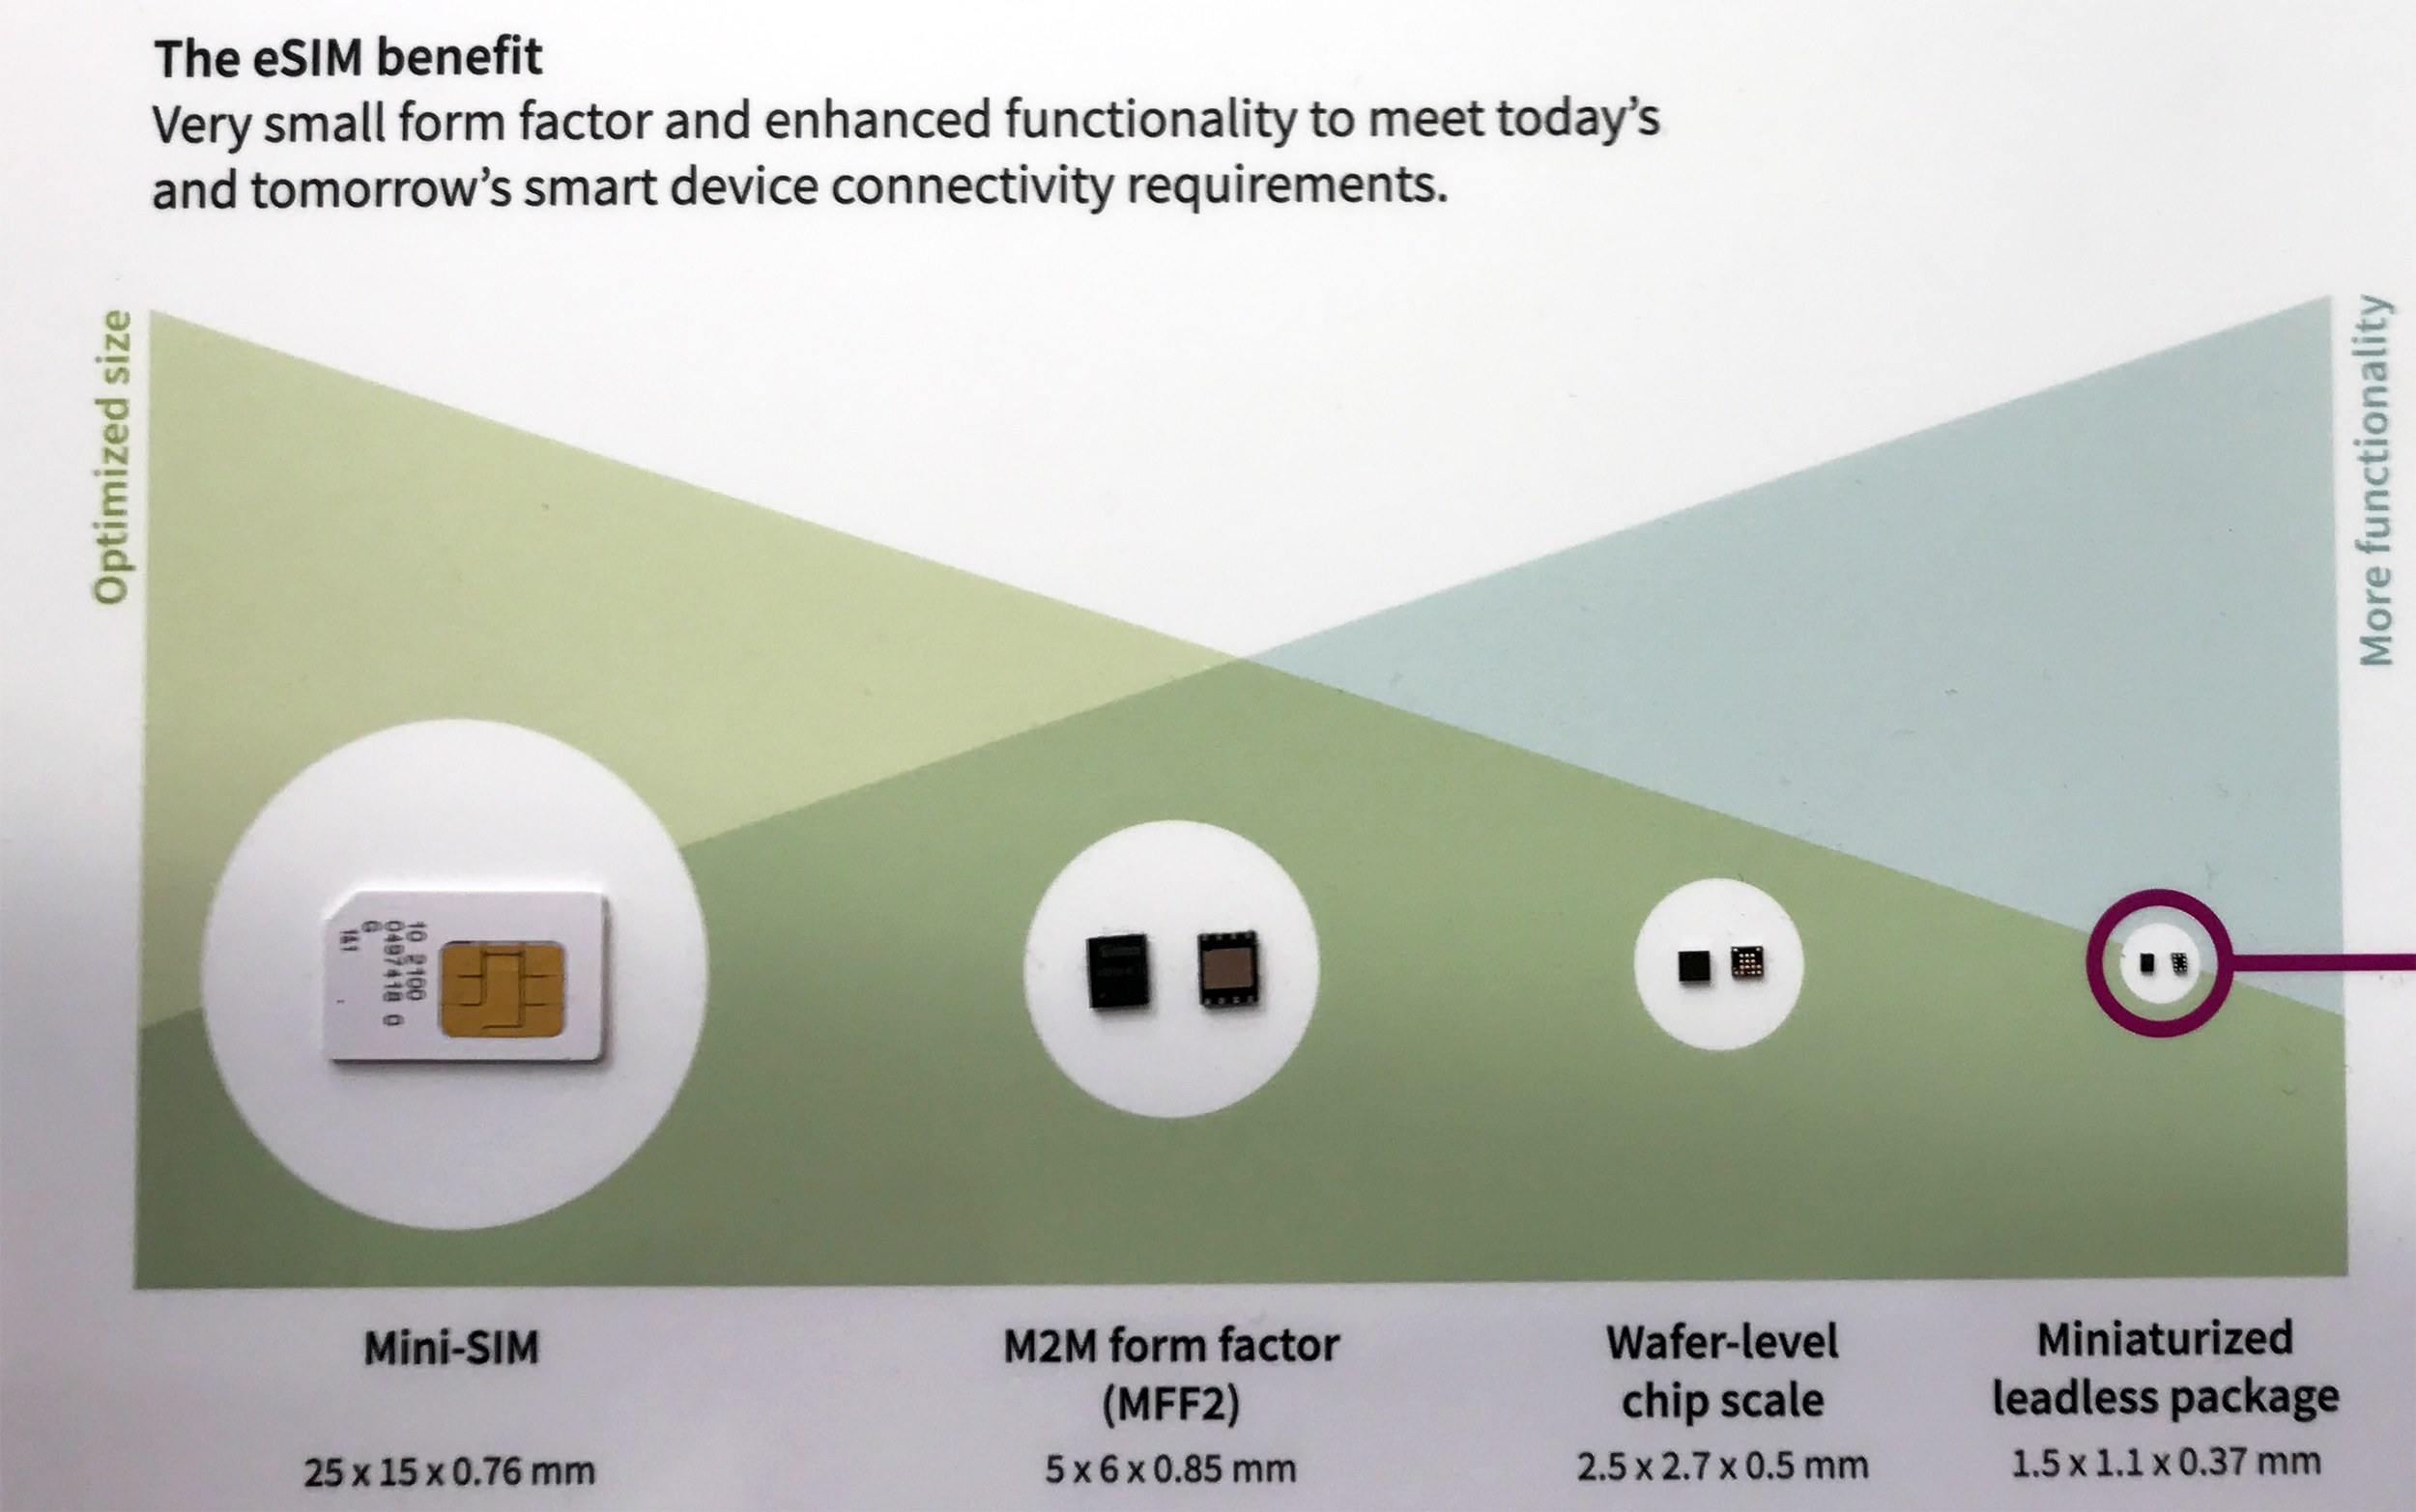 Infineon Shows Off Future of eSIM Cards: <1 65 mm2 Made